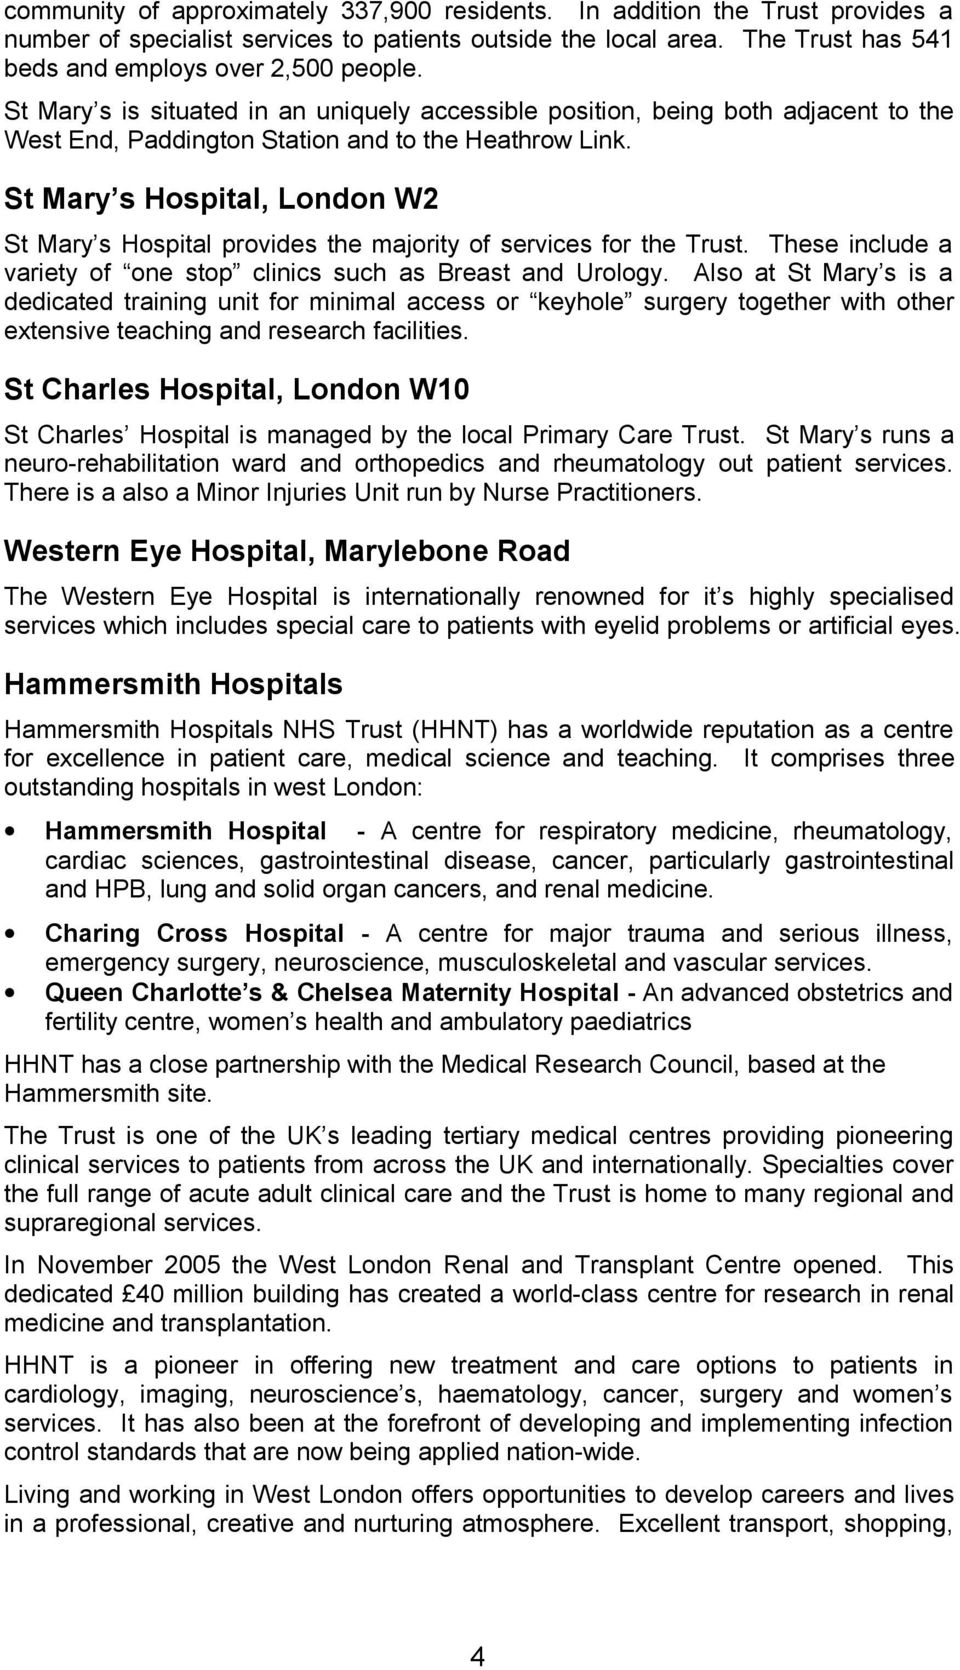 St Mary s Hospital, London W2 St Mary s Hospital provides the majority of services for the Trust. These include a variety of one stop clinics such as Breast and Urology.